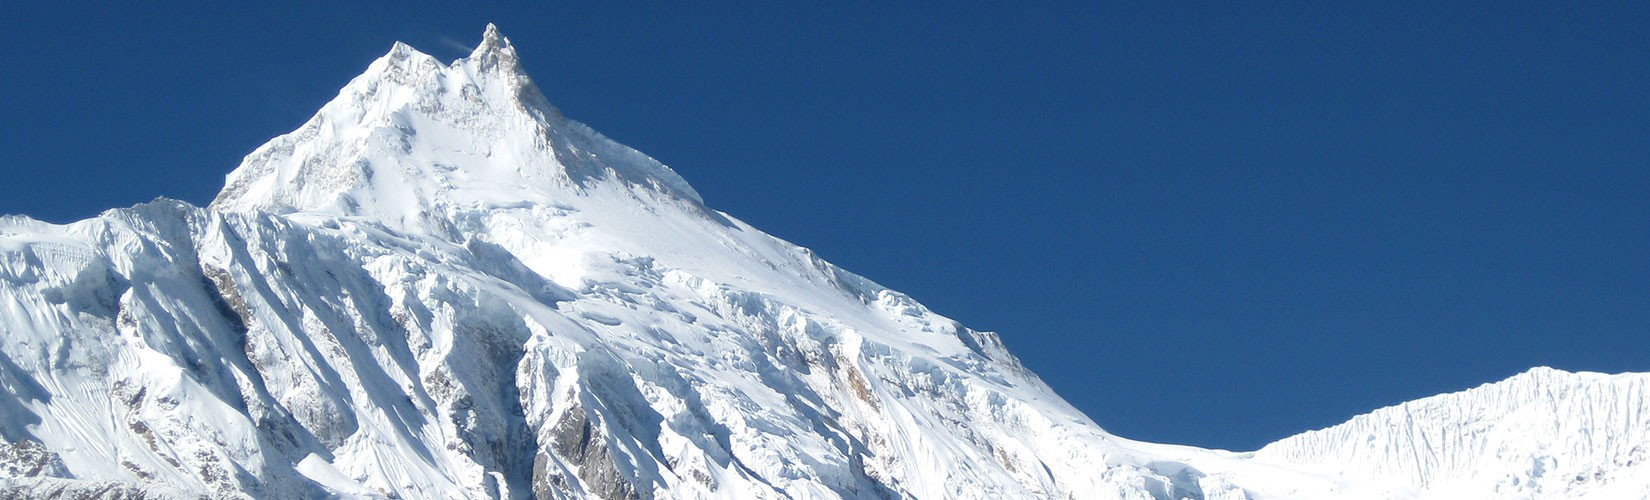 The eighth highest peak of the world, Manaslu, towers 8,163 meters above sea level. It is situated in western central part of Nepal in Mansiri Himal.